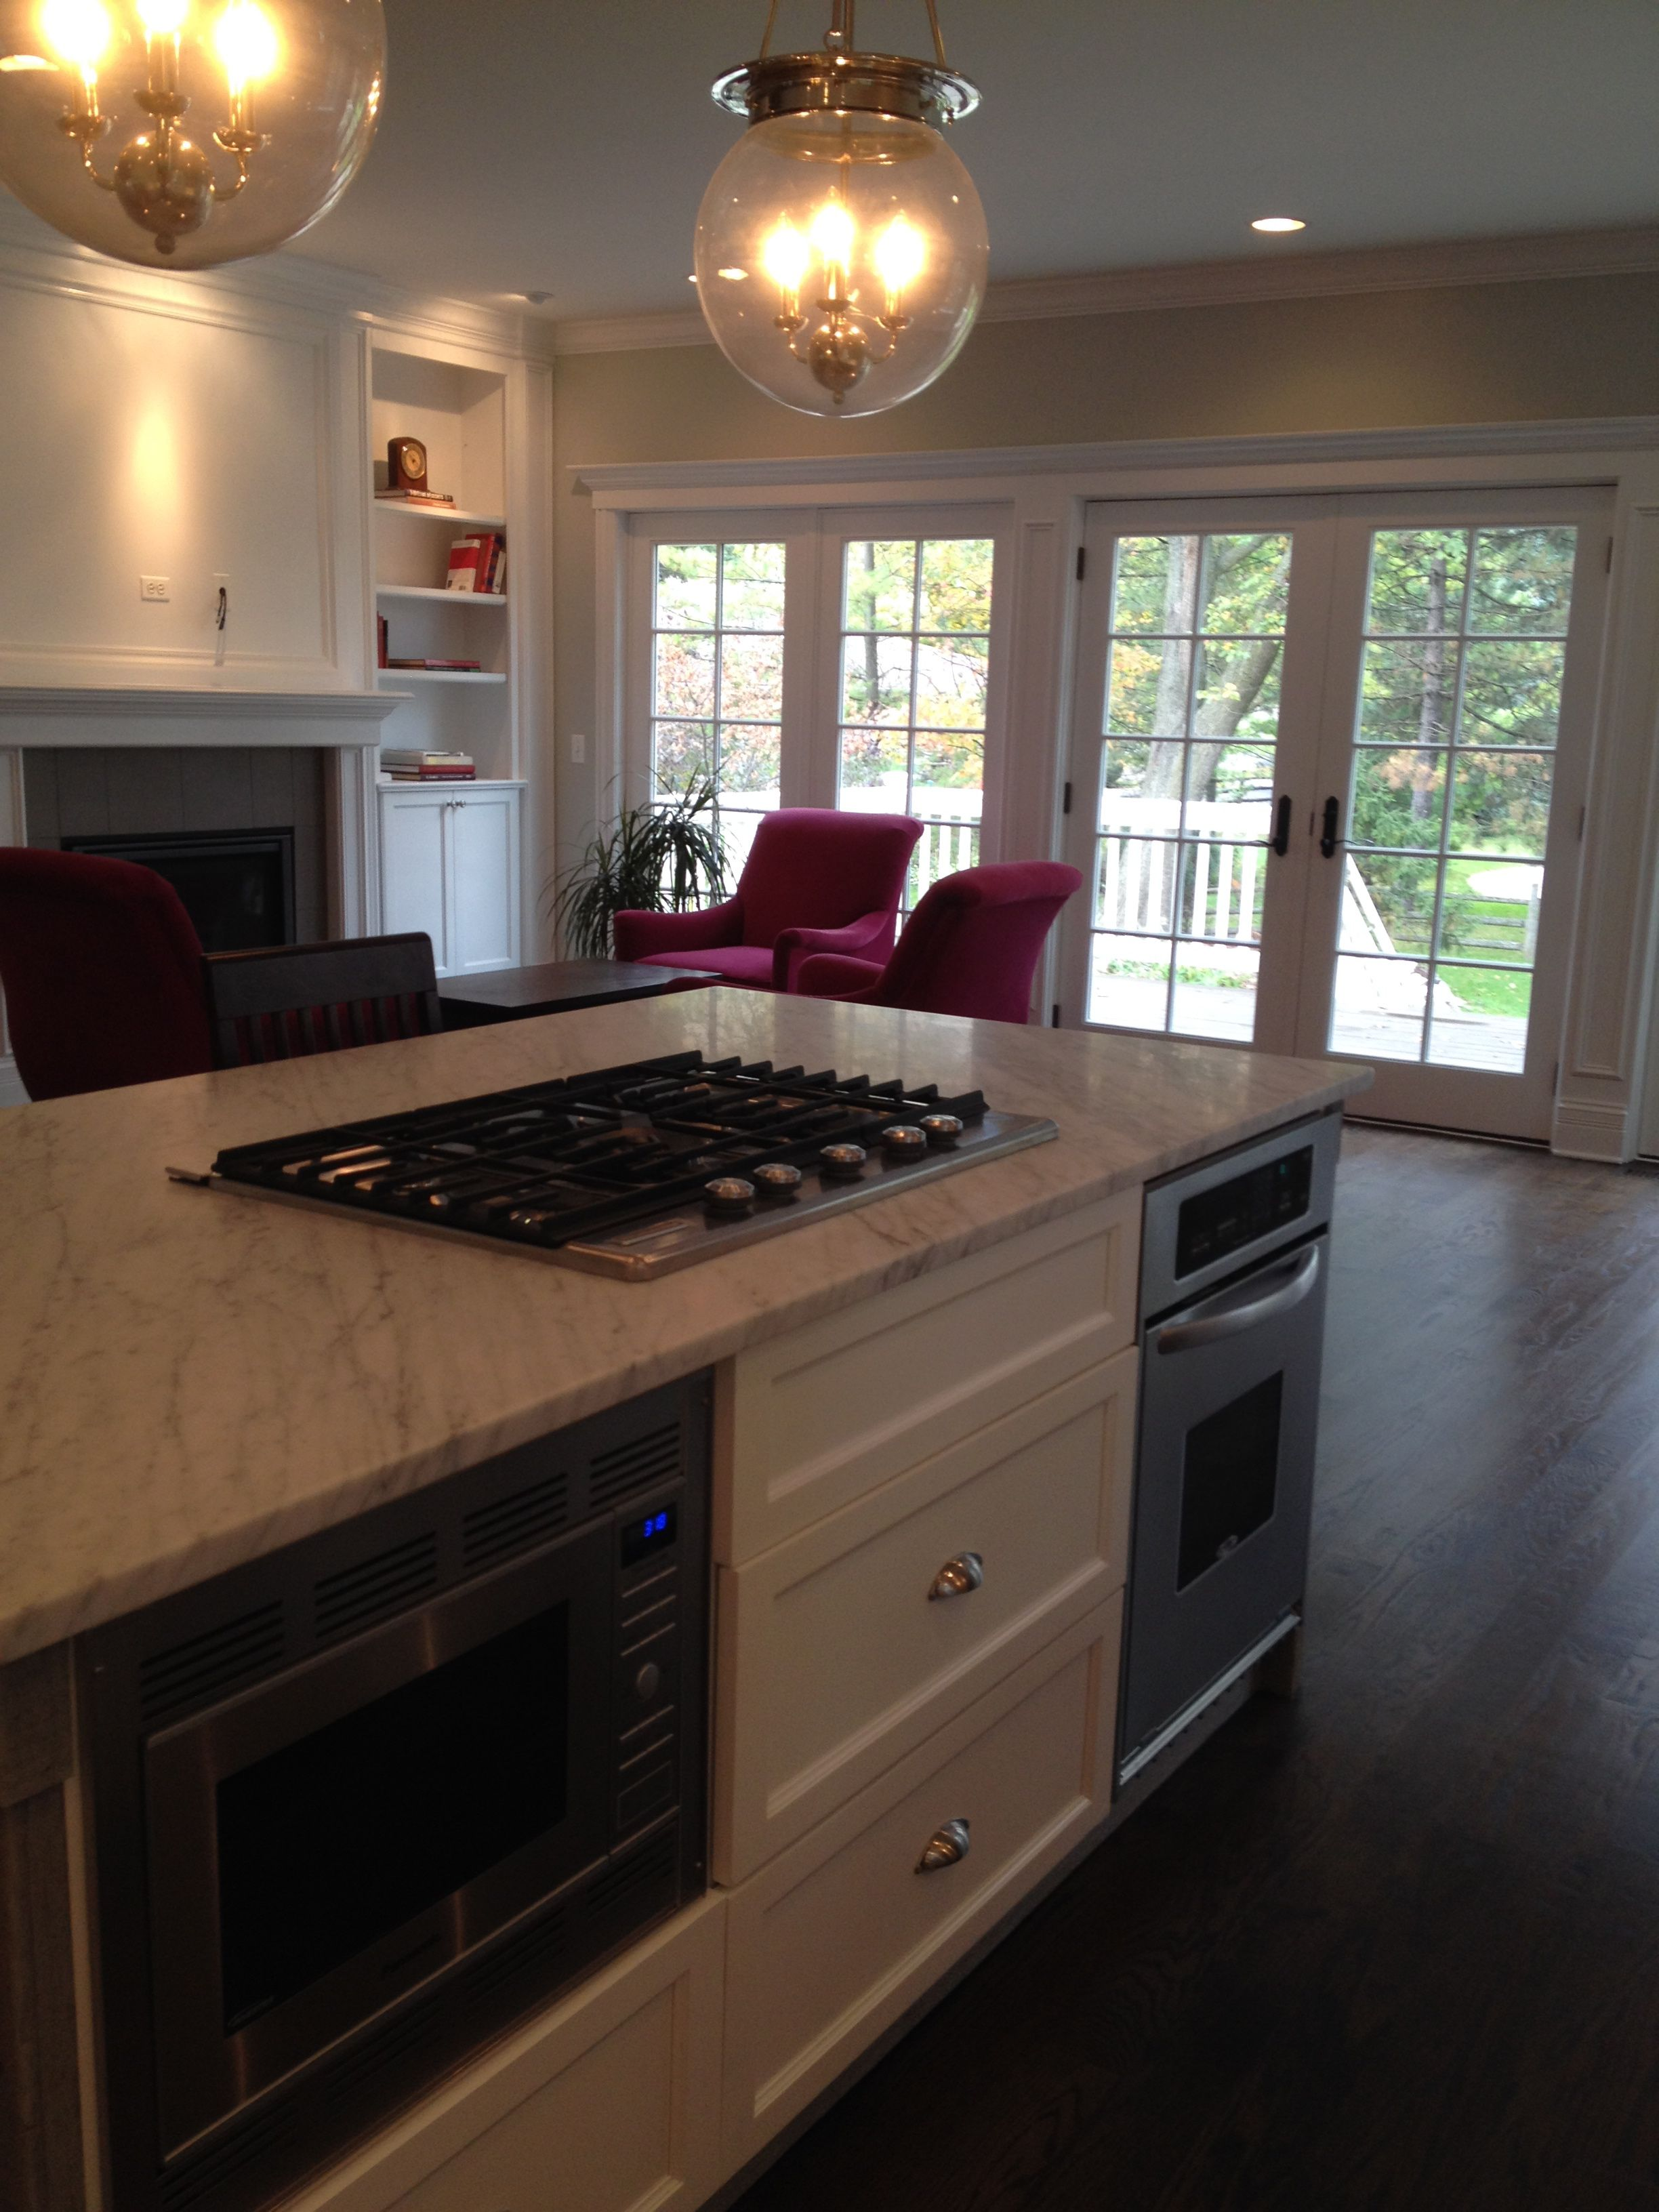 Kitchen Island With Carrara Marble Countertop Gas Cooktop 2nd Oven And Microwave